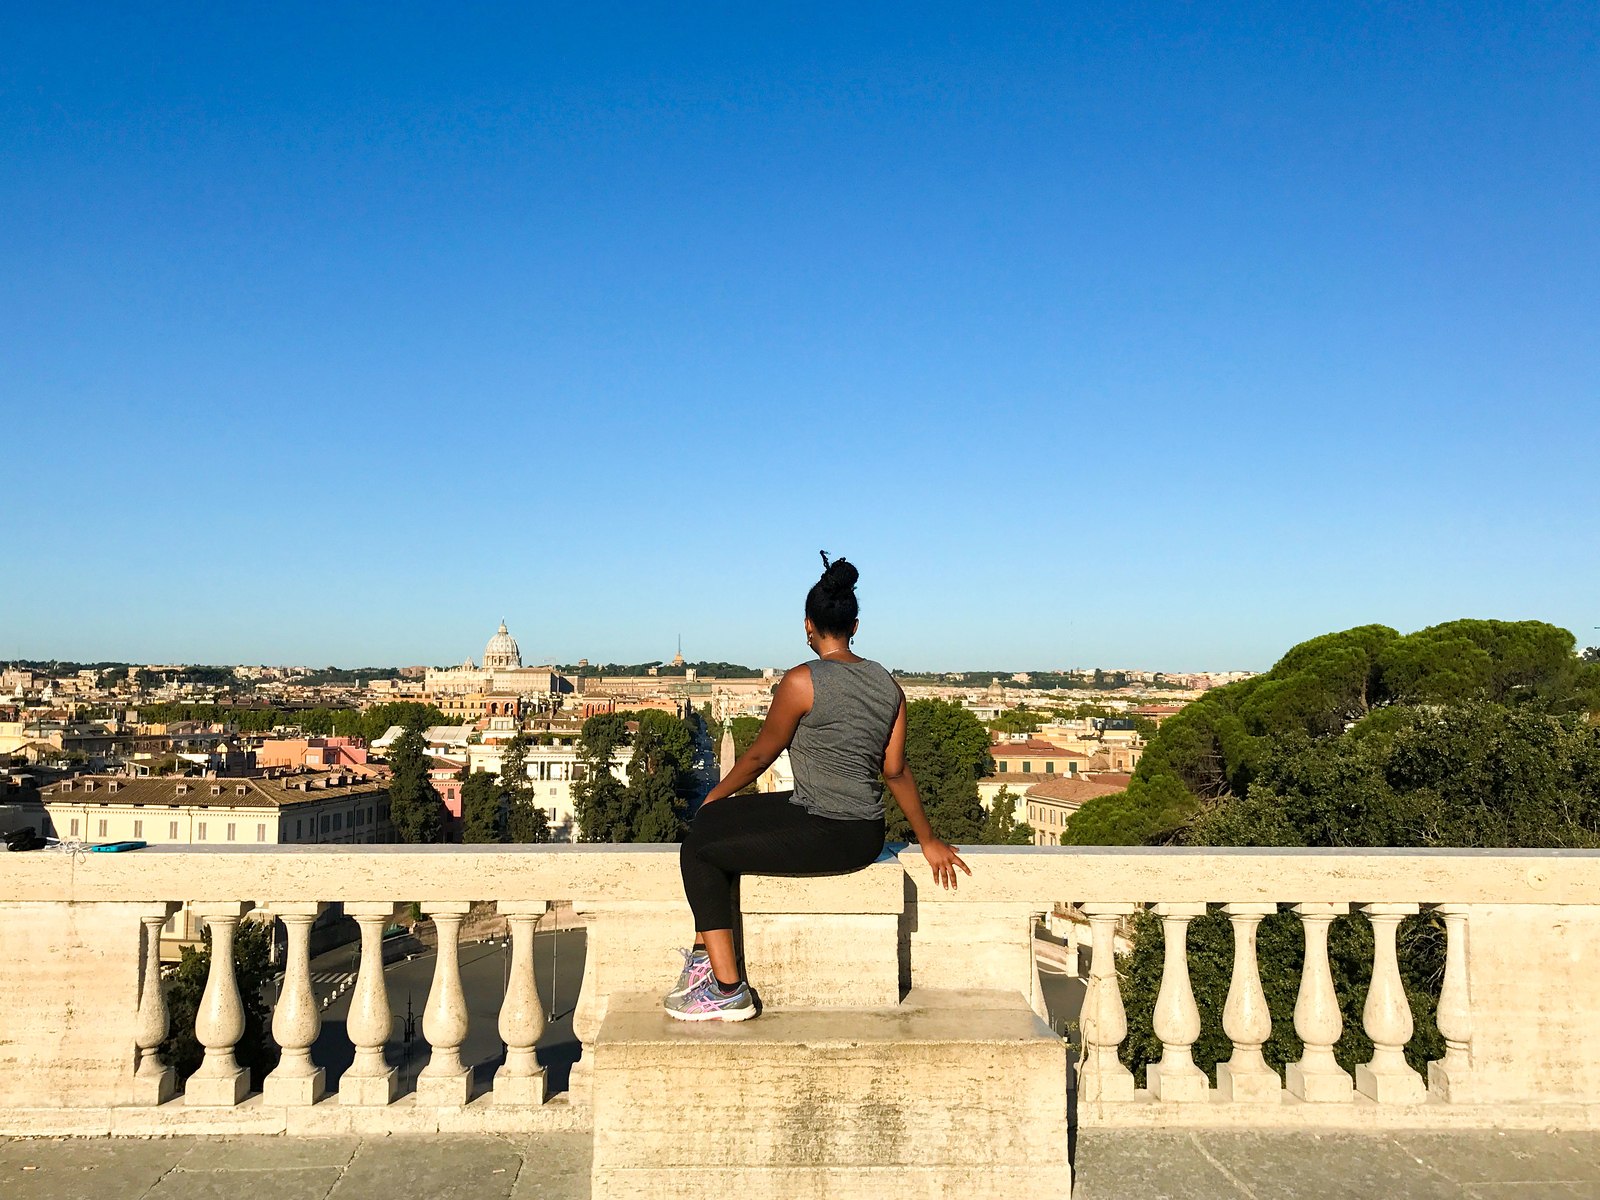 Villa Borghese Viewpoint in Rome